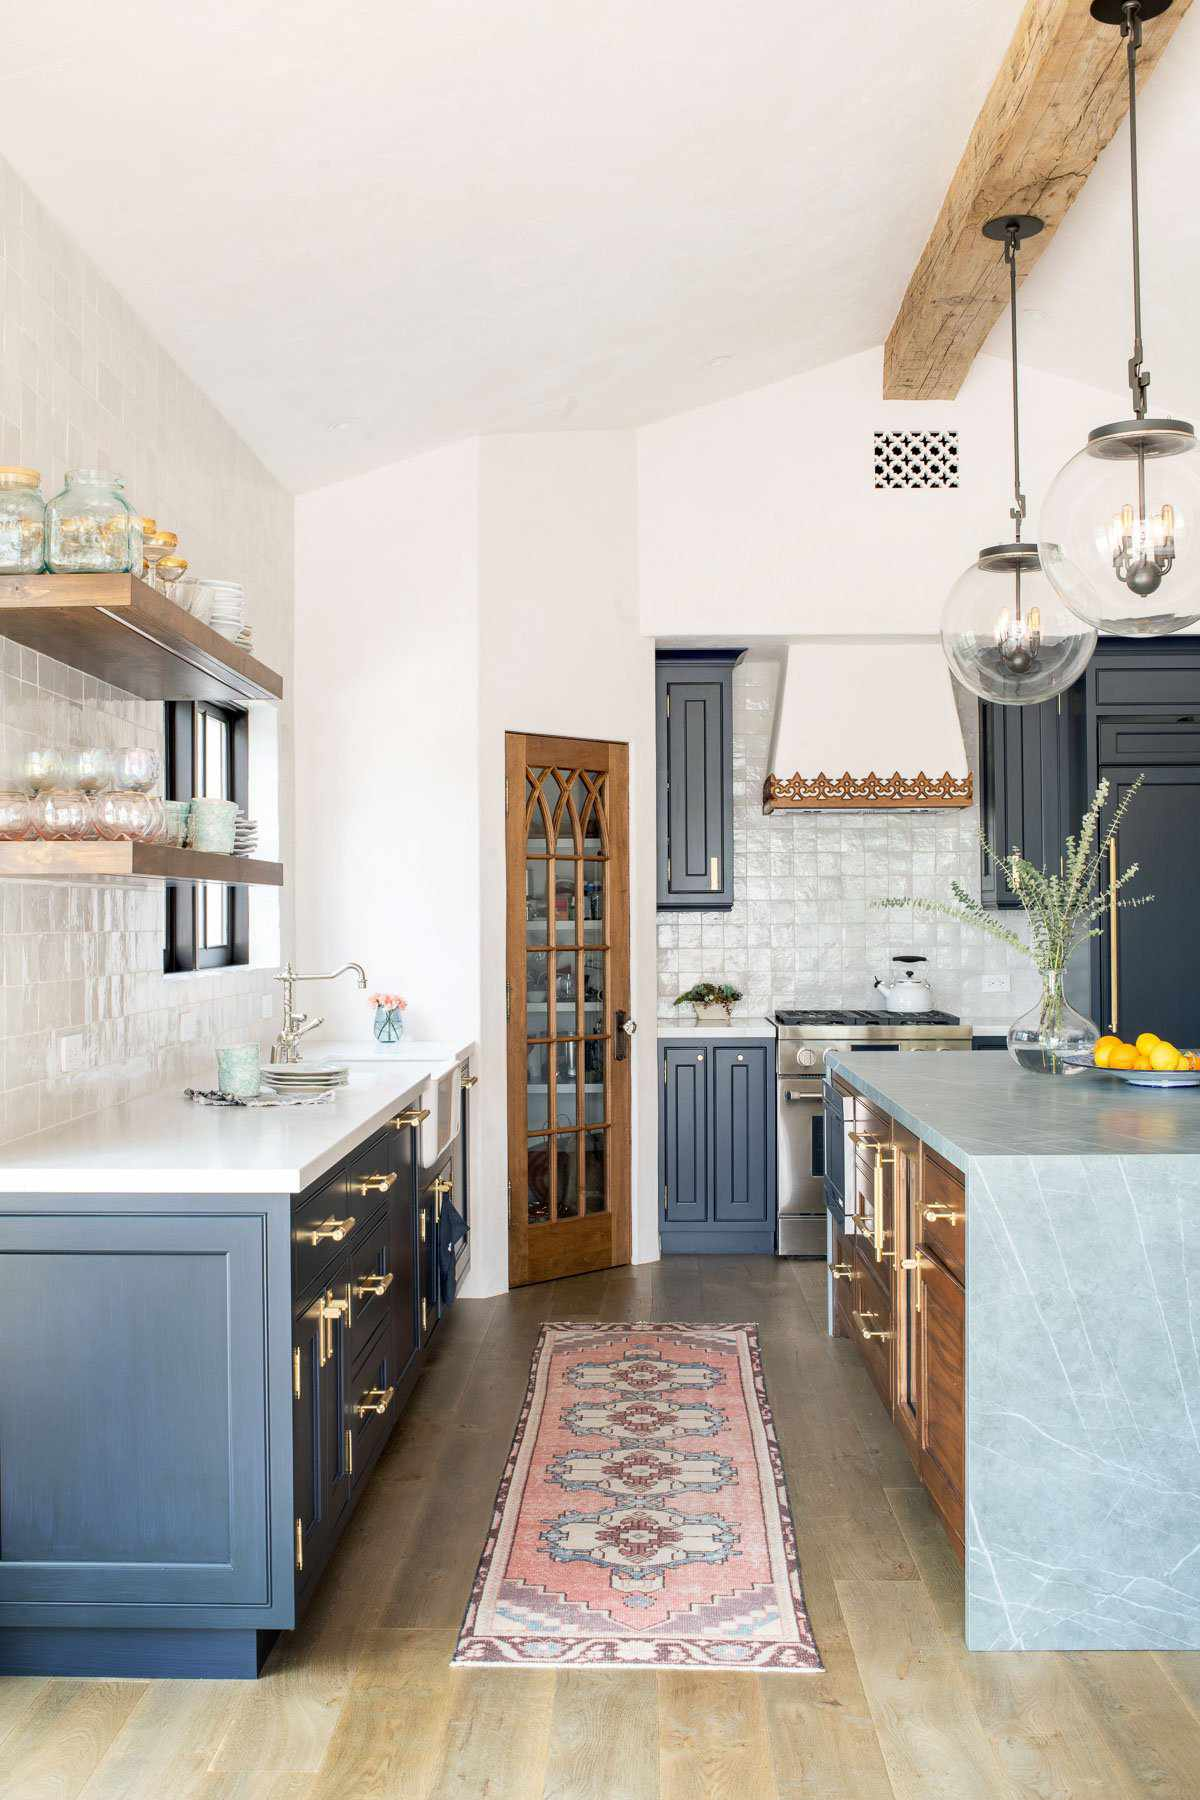 A kitchen filled with navy cabinets and a printed pink rug